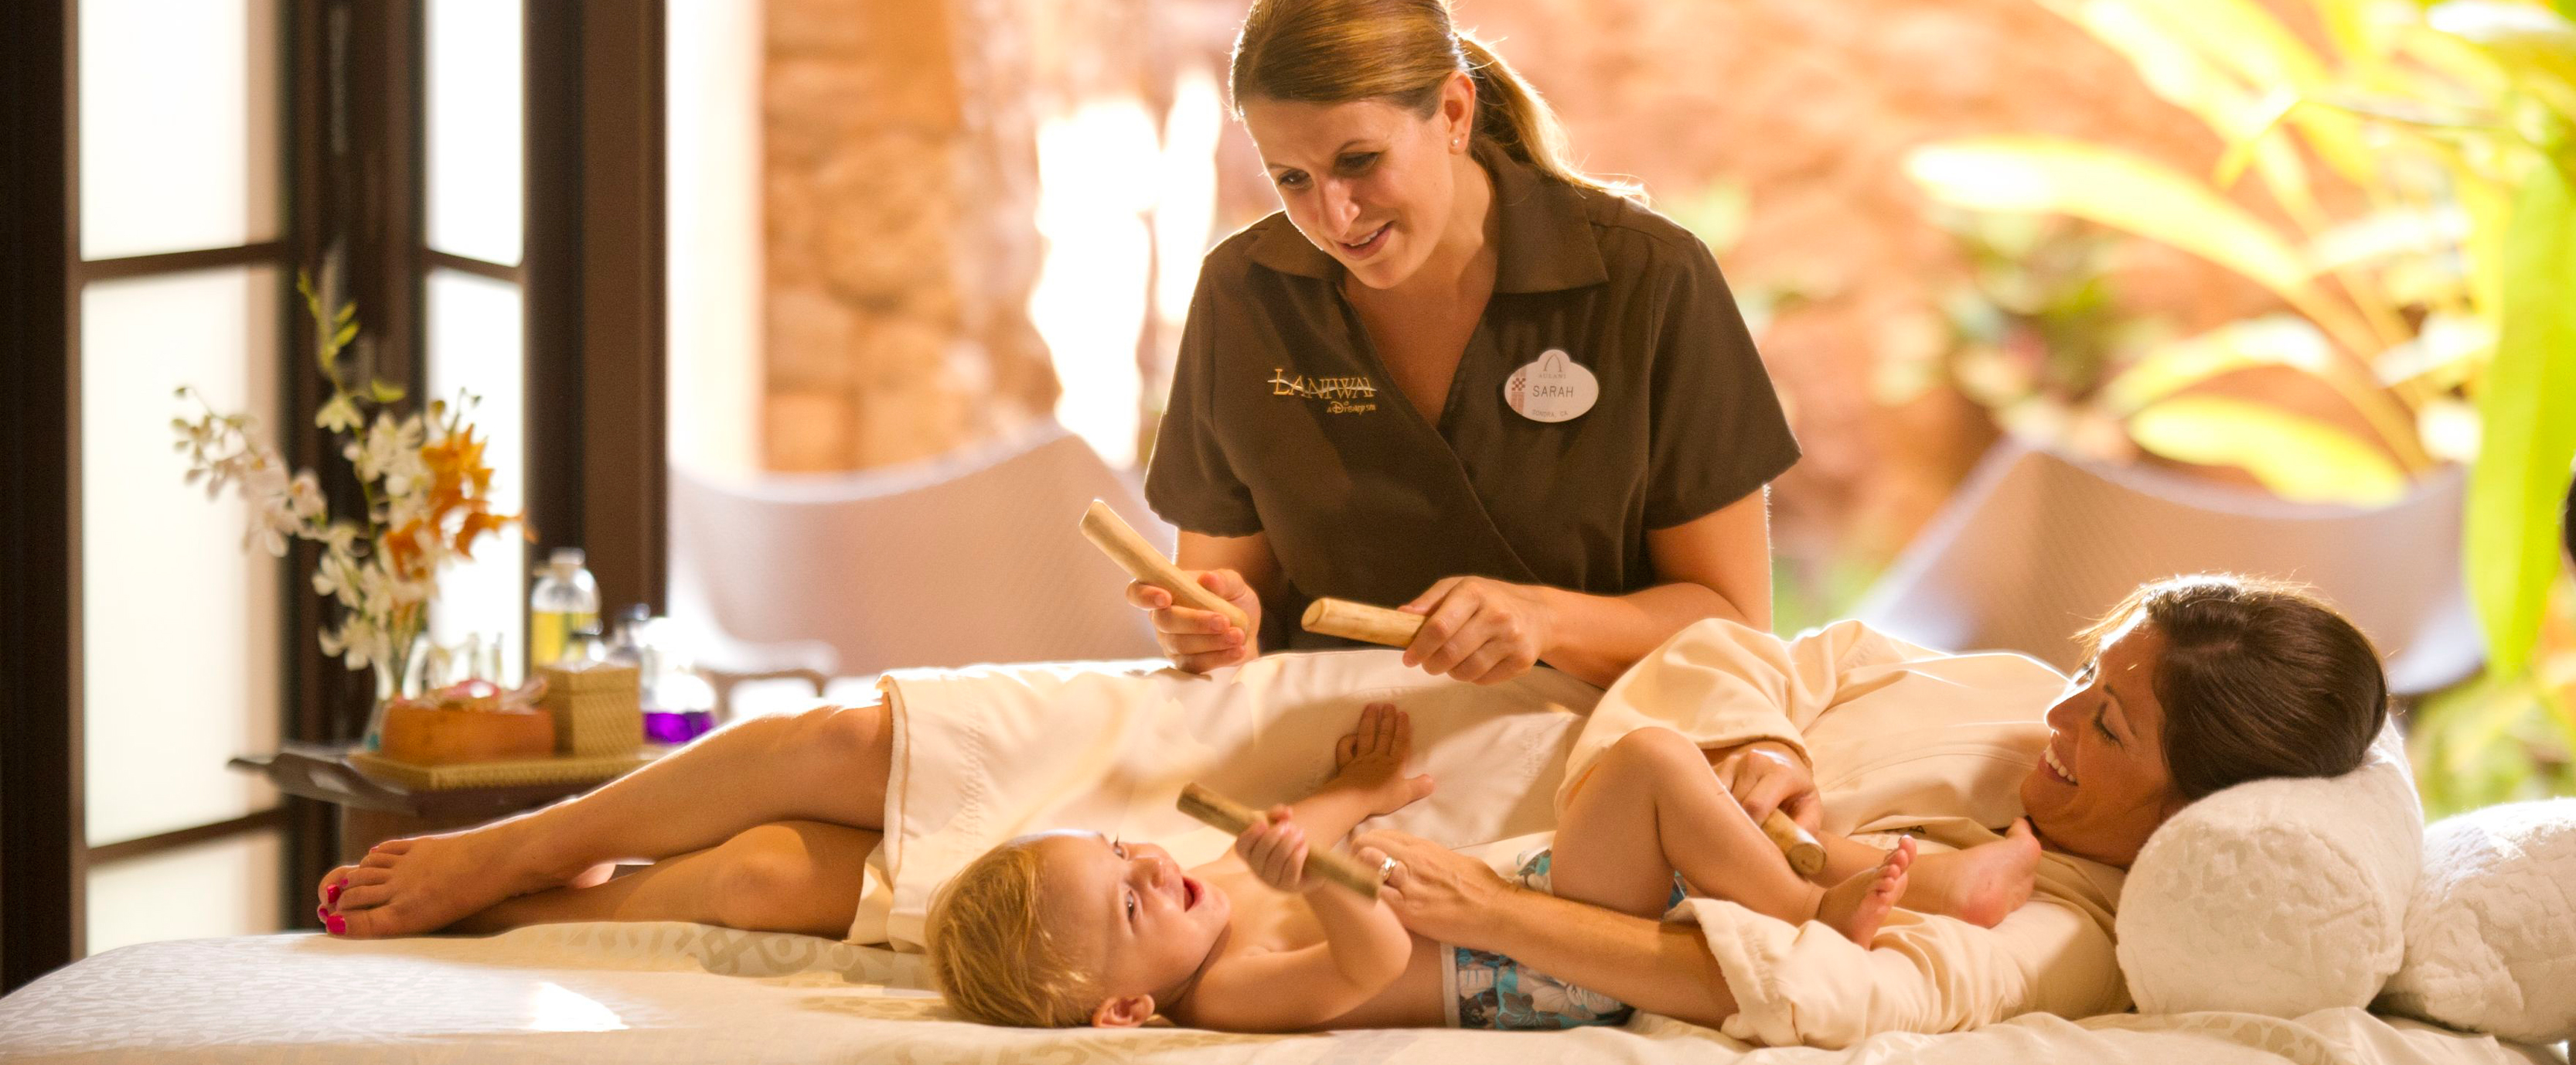 A couple shares a massage experience with their infant